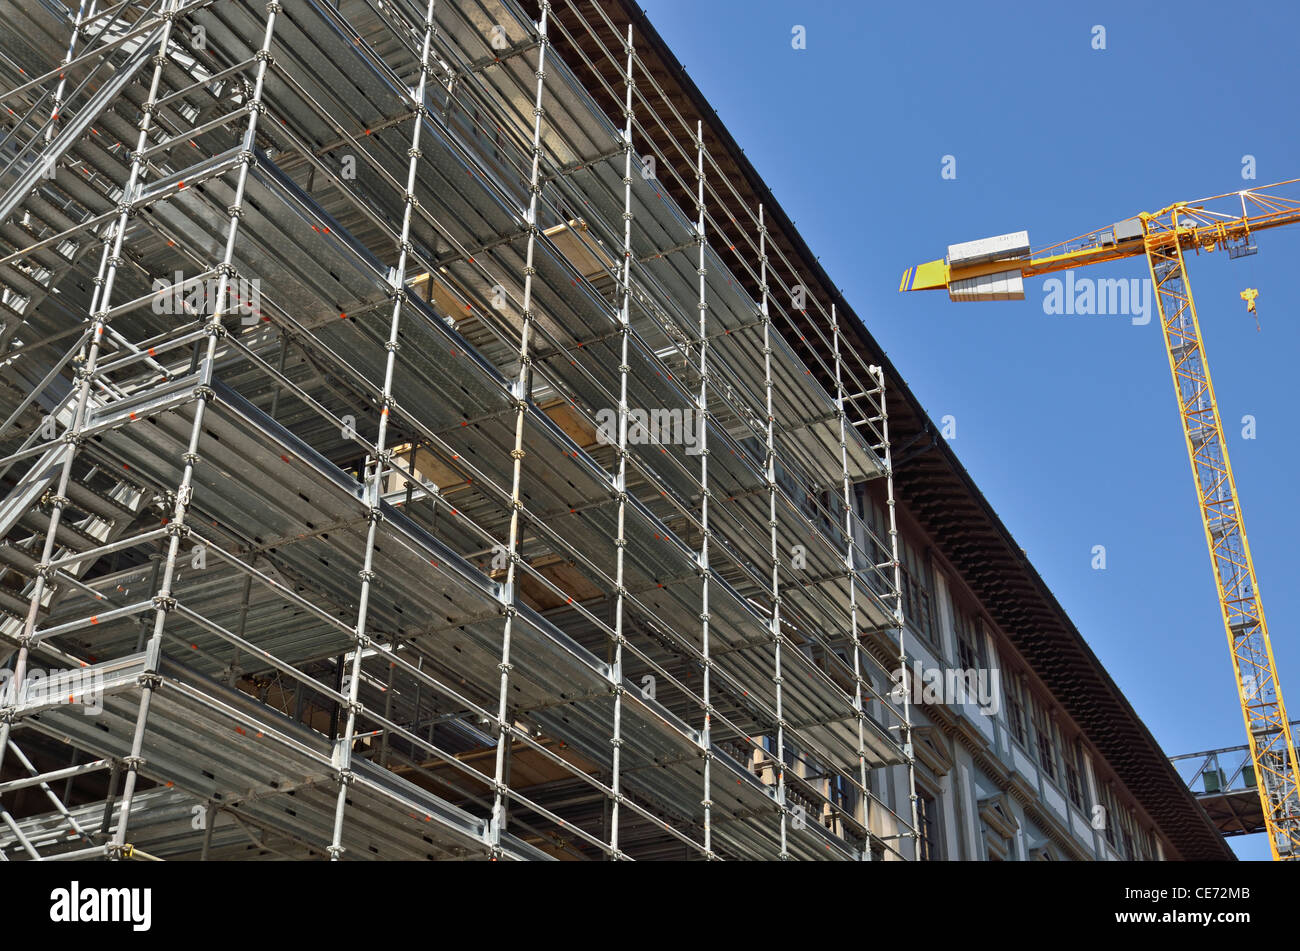 Construction crame by building and scaffolding, Florence, Tuscany, Italy - Stock Image